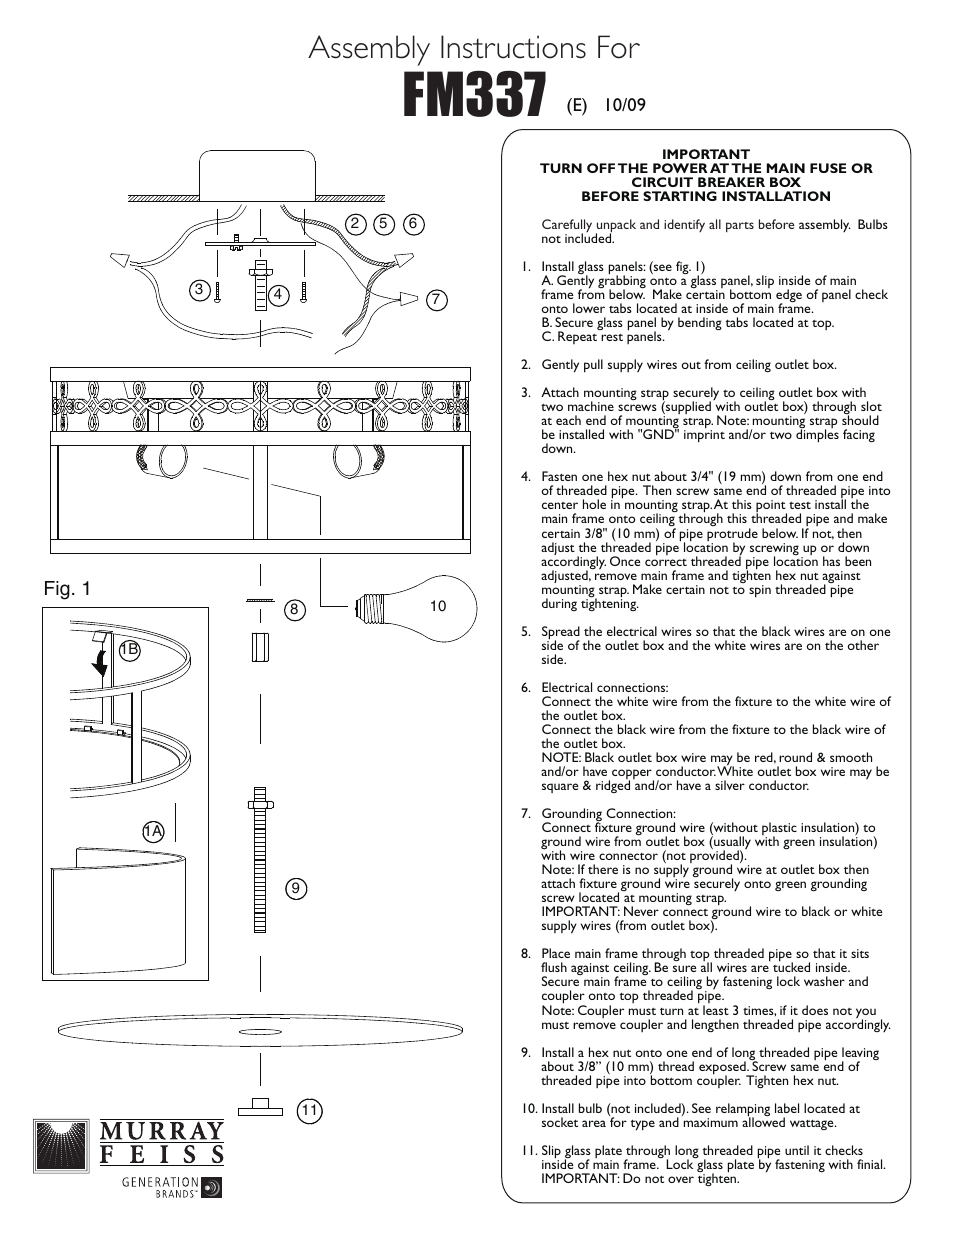 Feiss Fm337 User Manual 1 Page An Electrical Copper Wire With Pipe And White Background